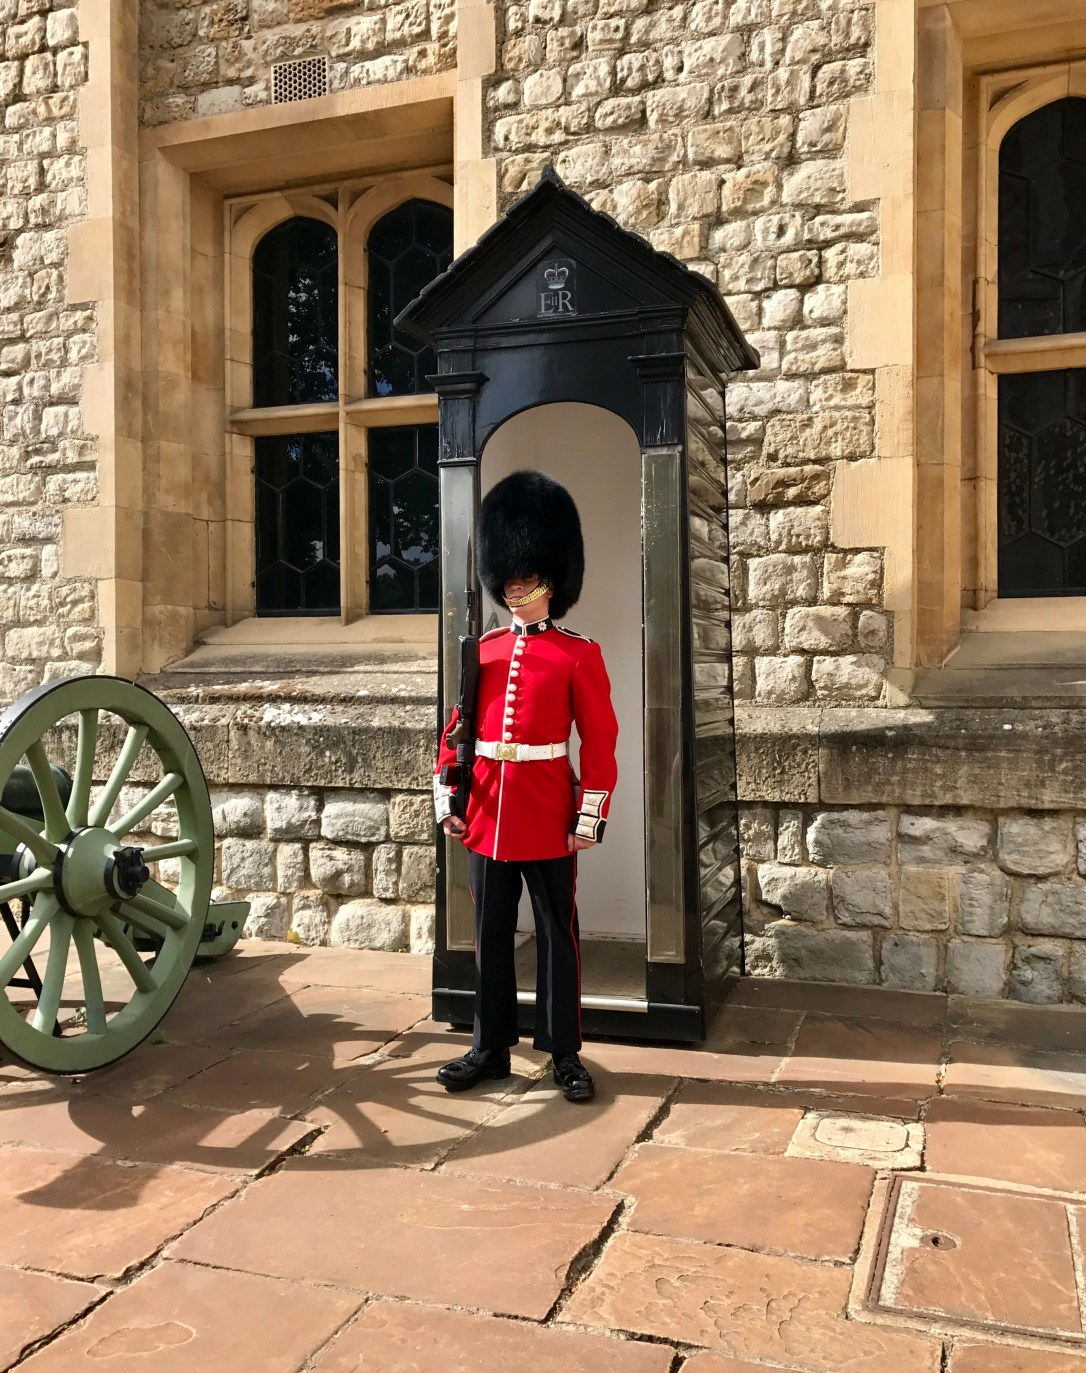 Queens guard tower of london